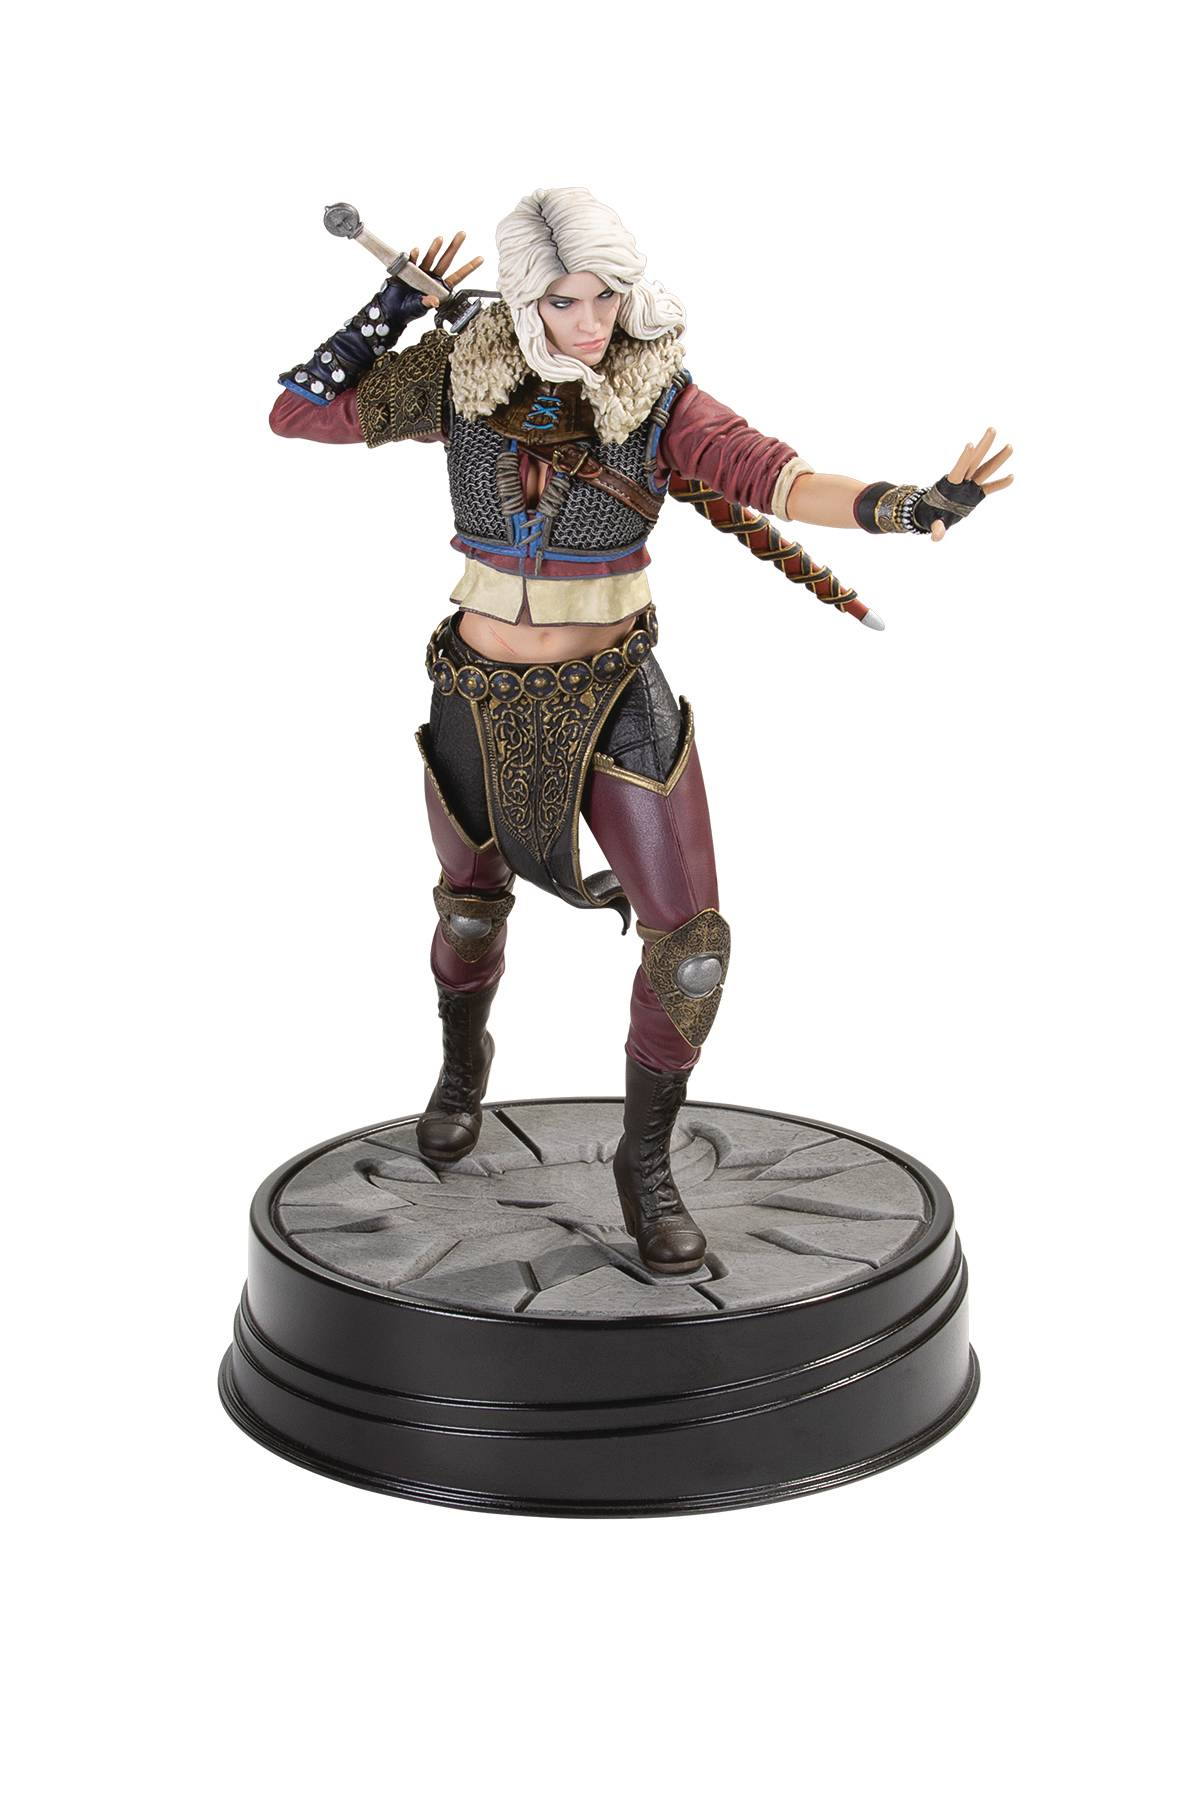 WITCHER 3 WILD HUNT CIRI FIGURE SERIES 2